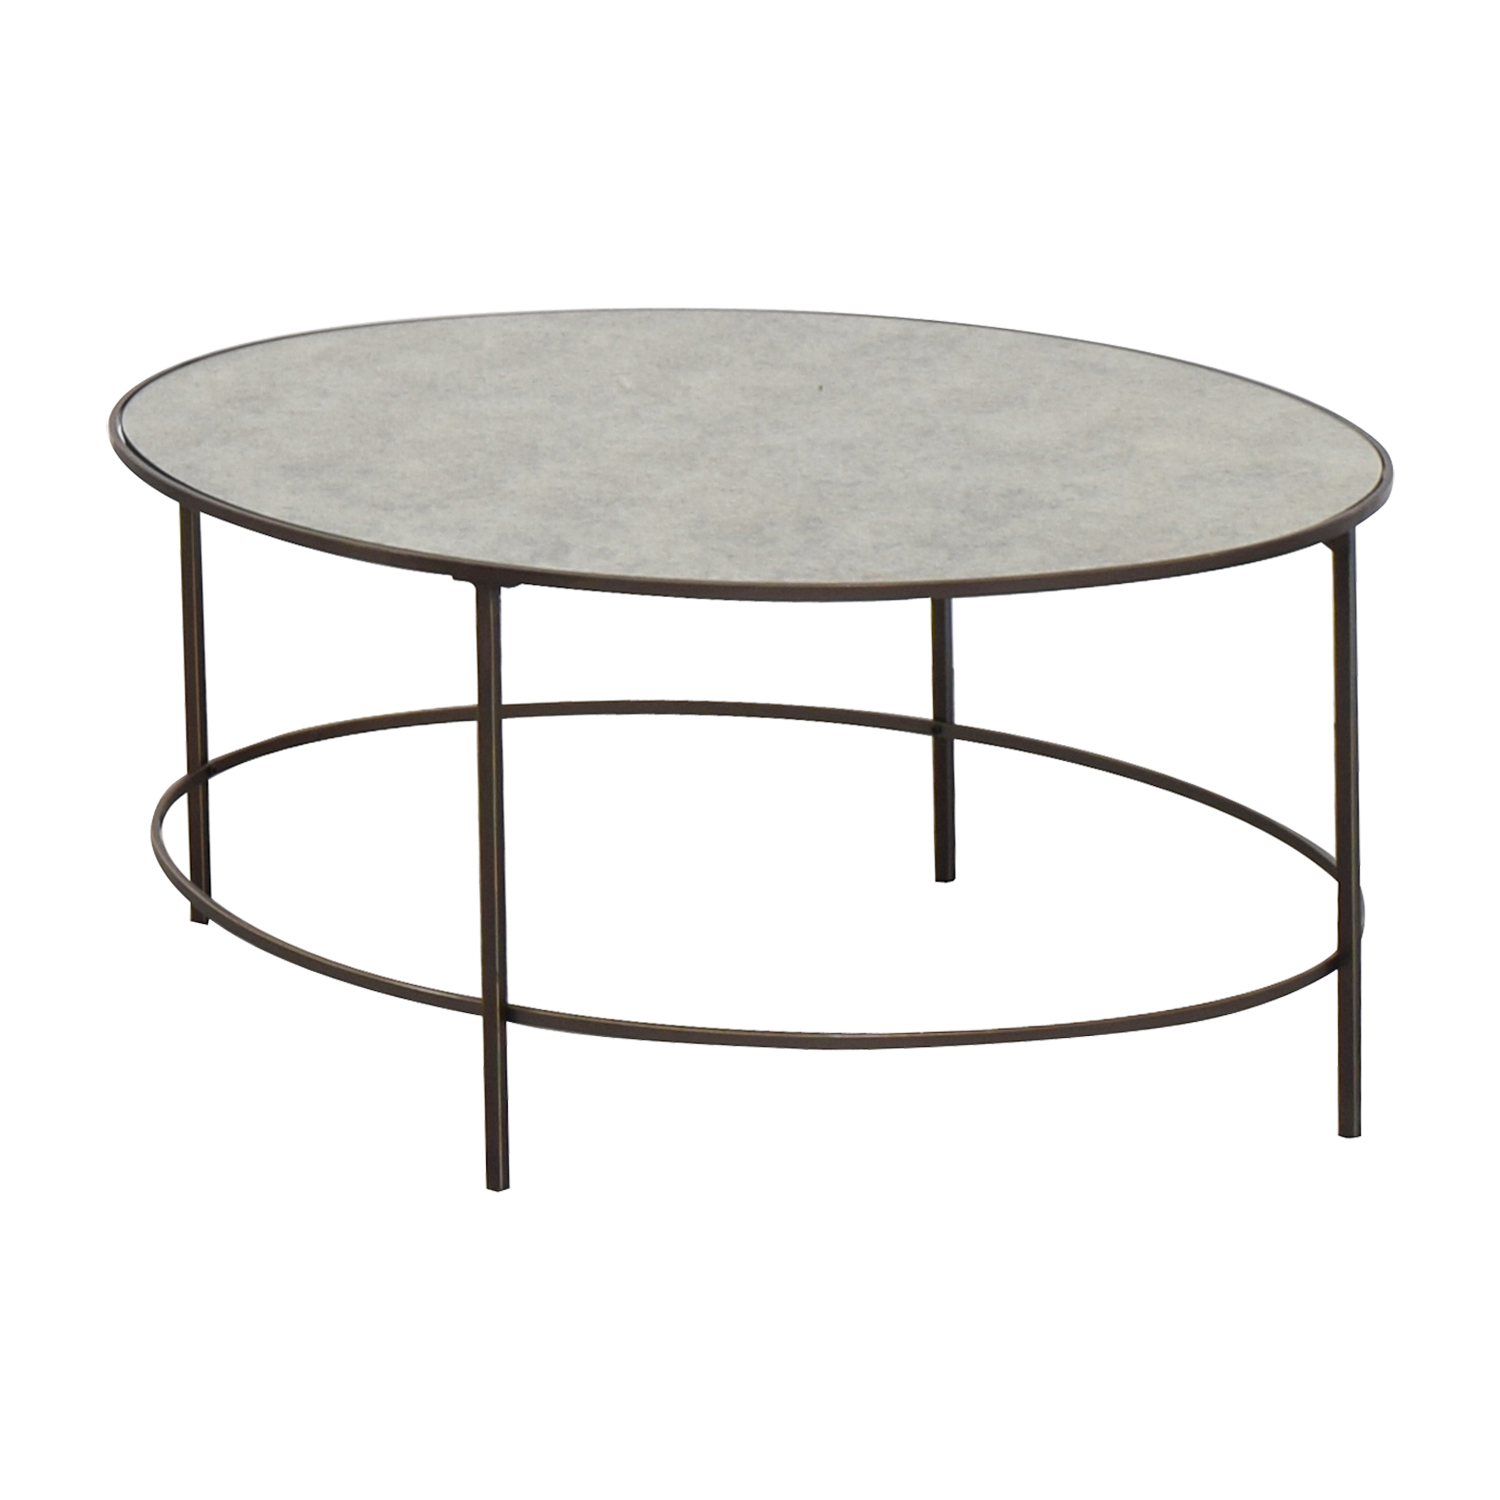 76 Off West Elm West Elm Oval Metal And Mirror Coffee Table Tables